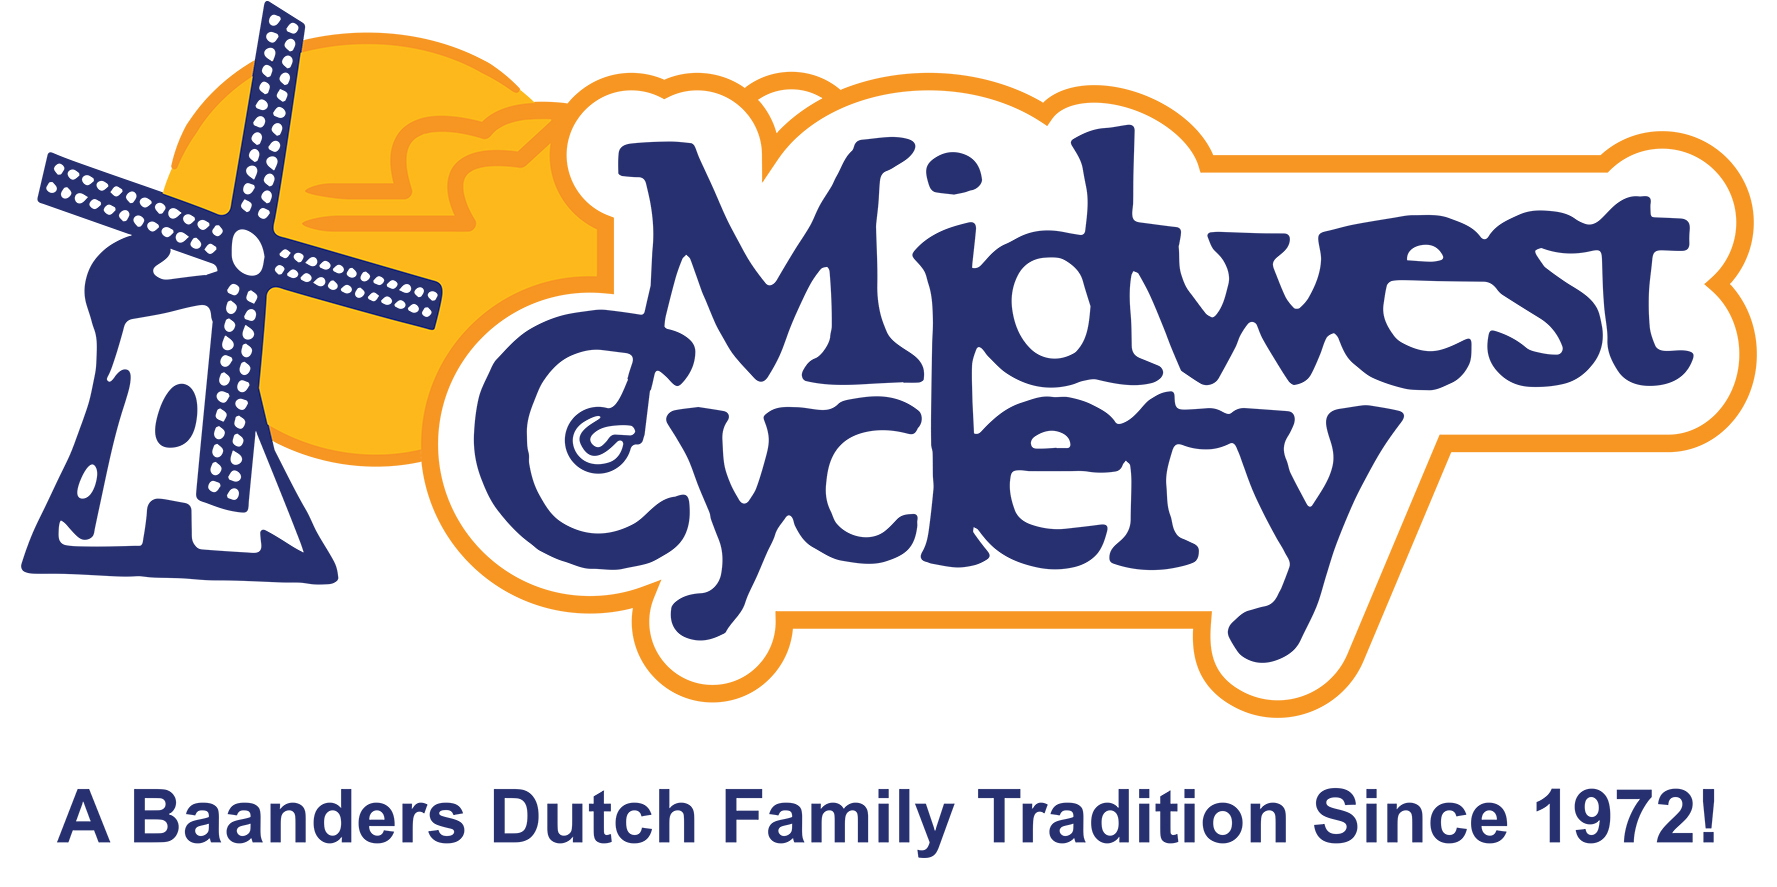 Midwest Cyclery Logo.jpg